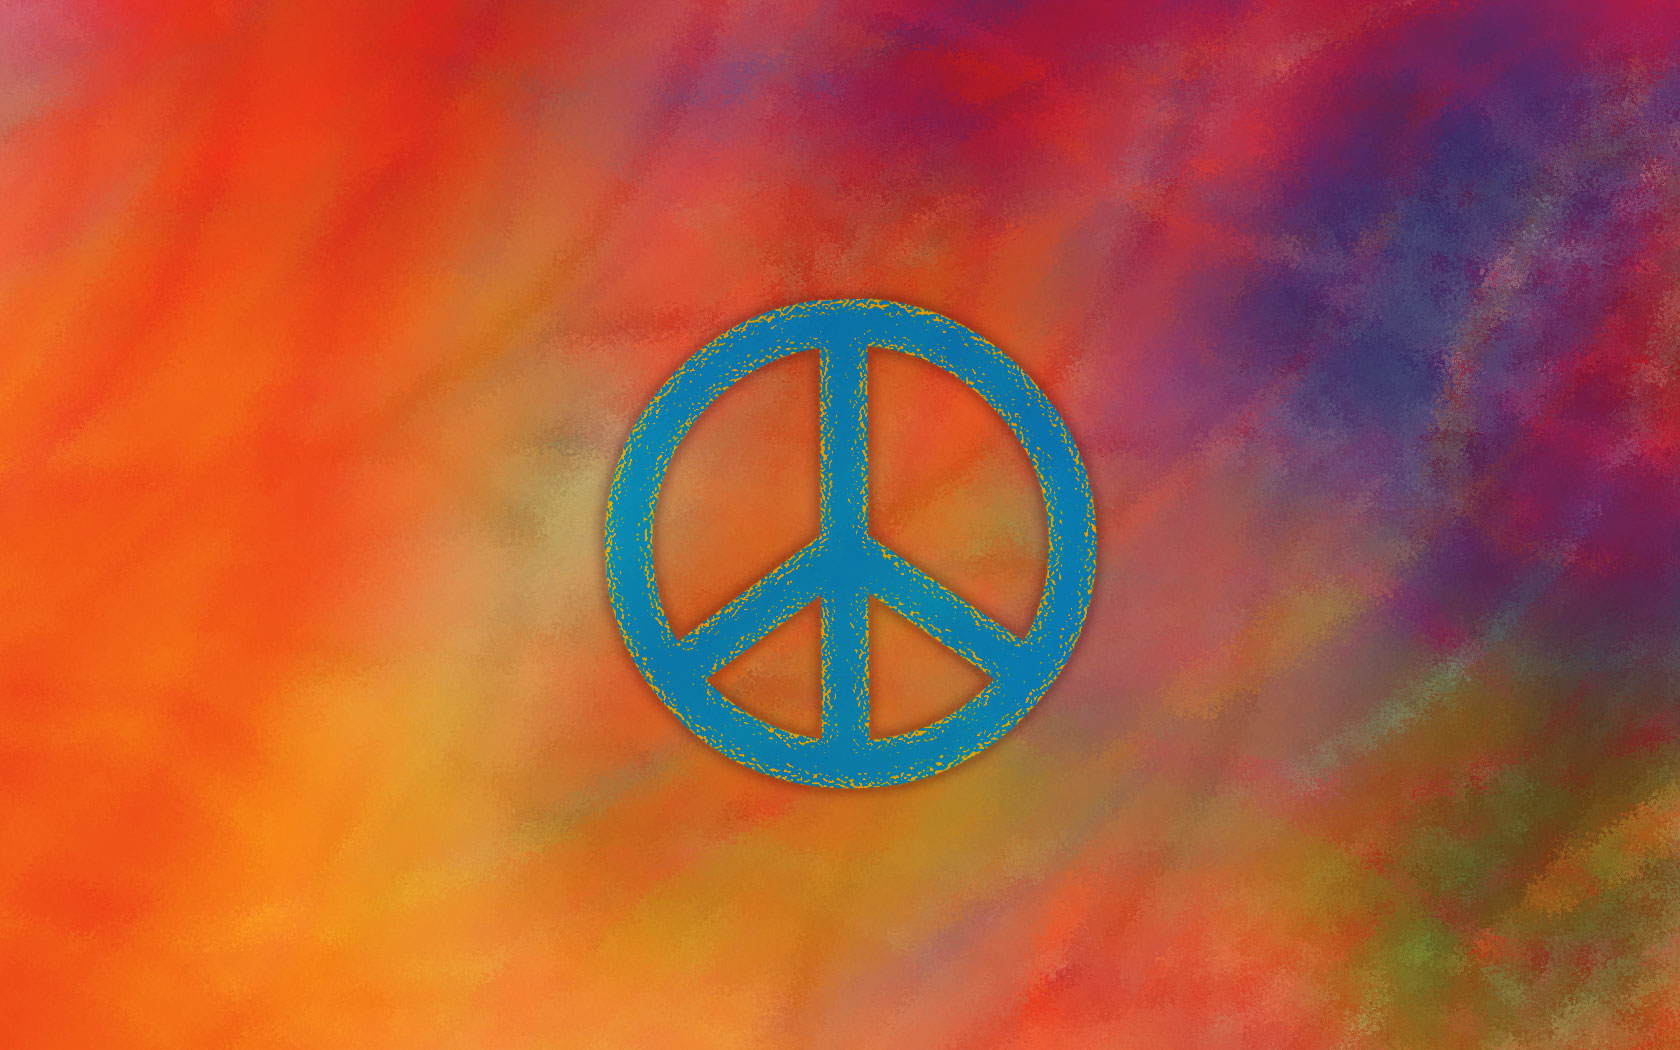 Peace Sign Wallpaper 7941 1680x1050 px